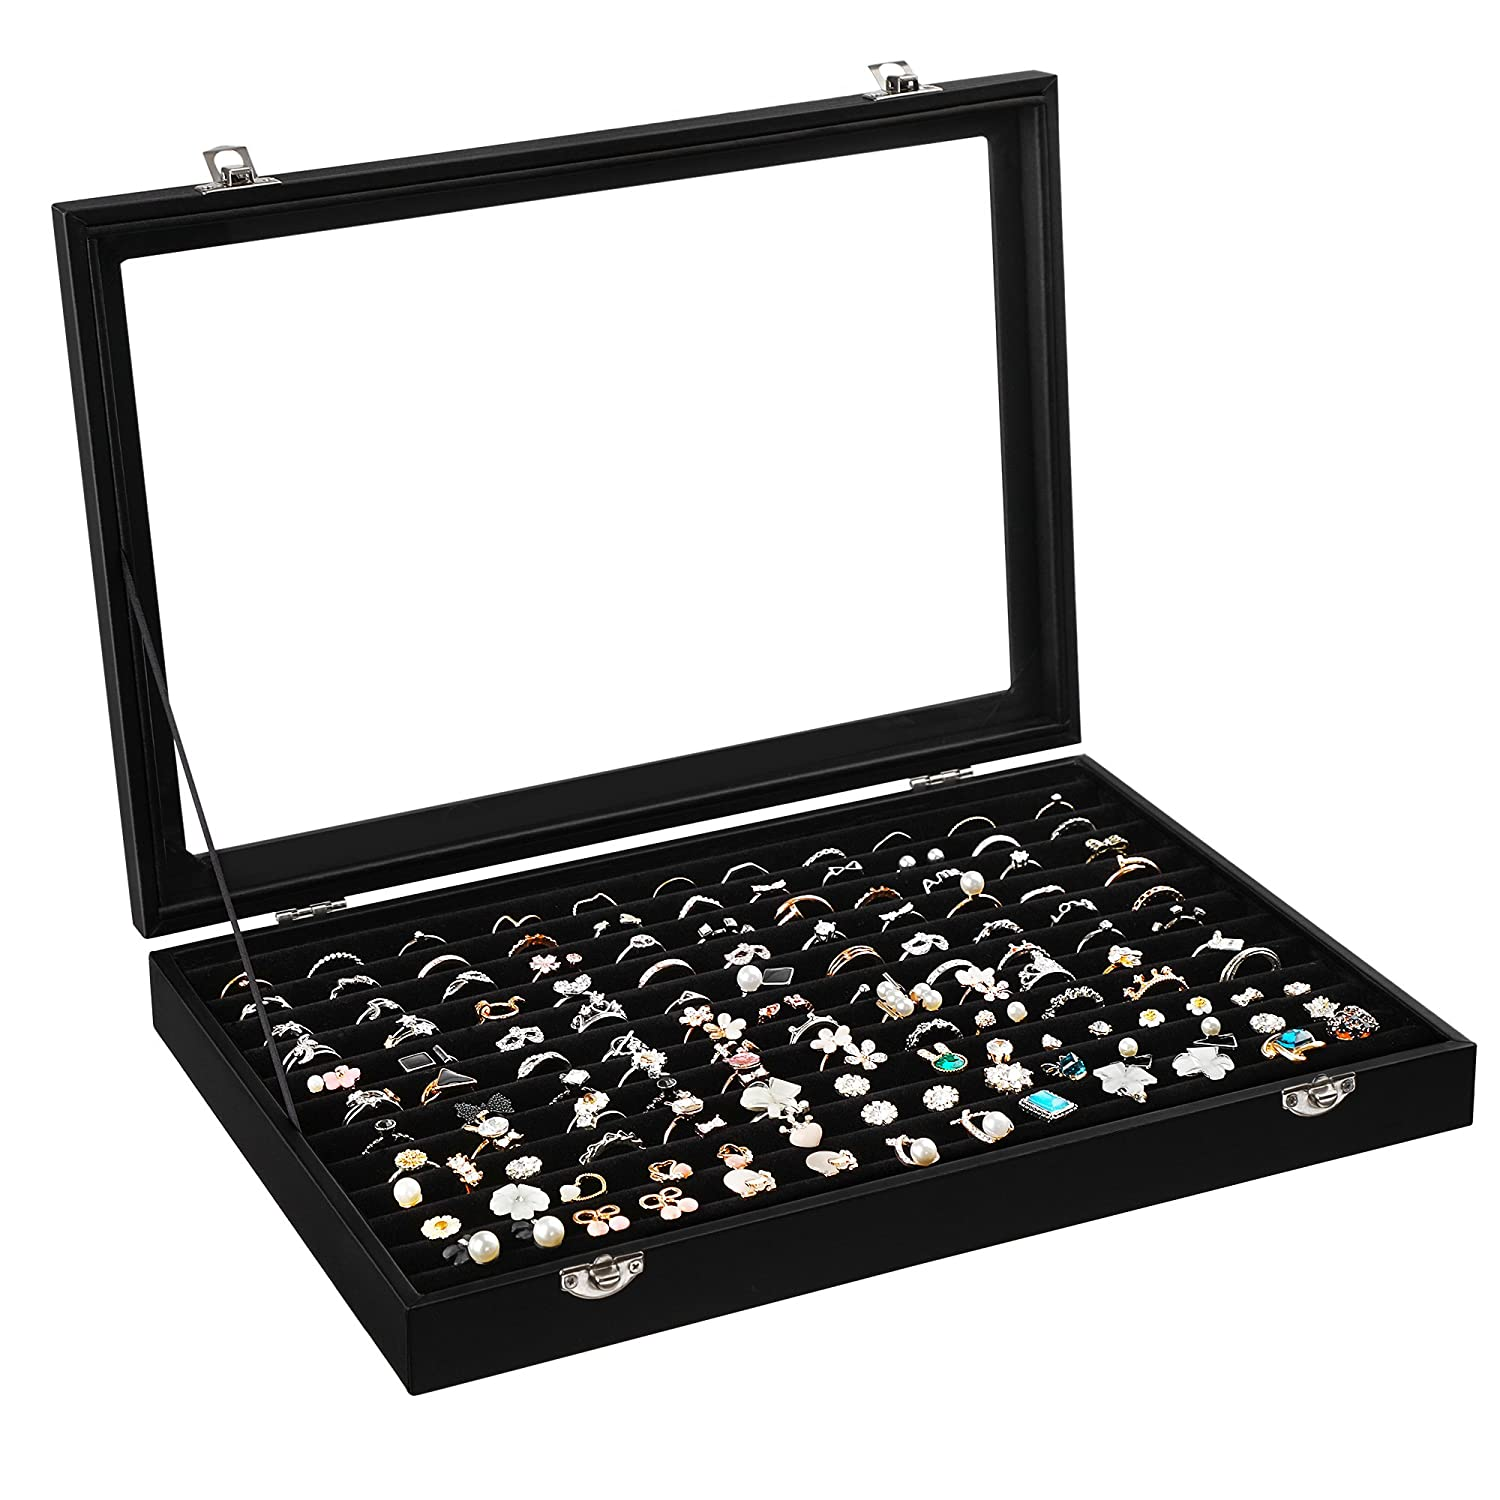 Jewel Box slot - fill it up with jewellery at Casumo